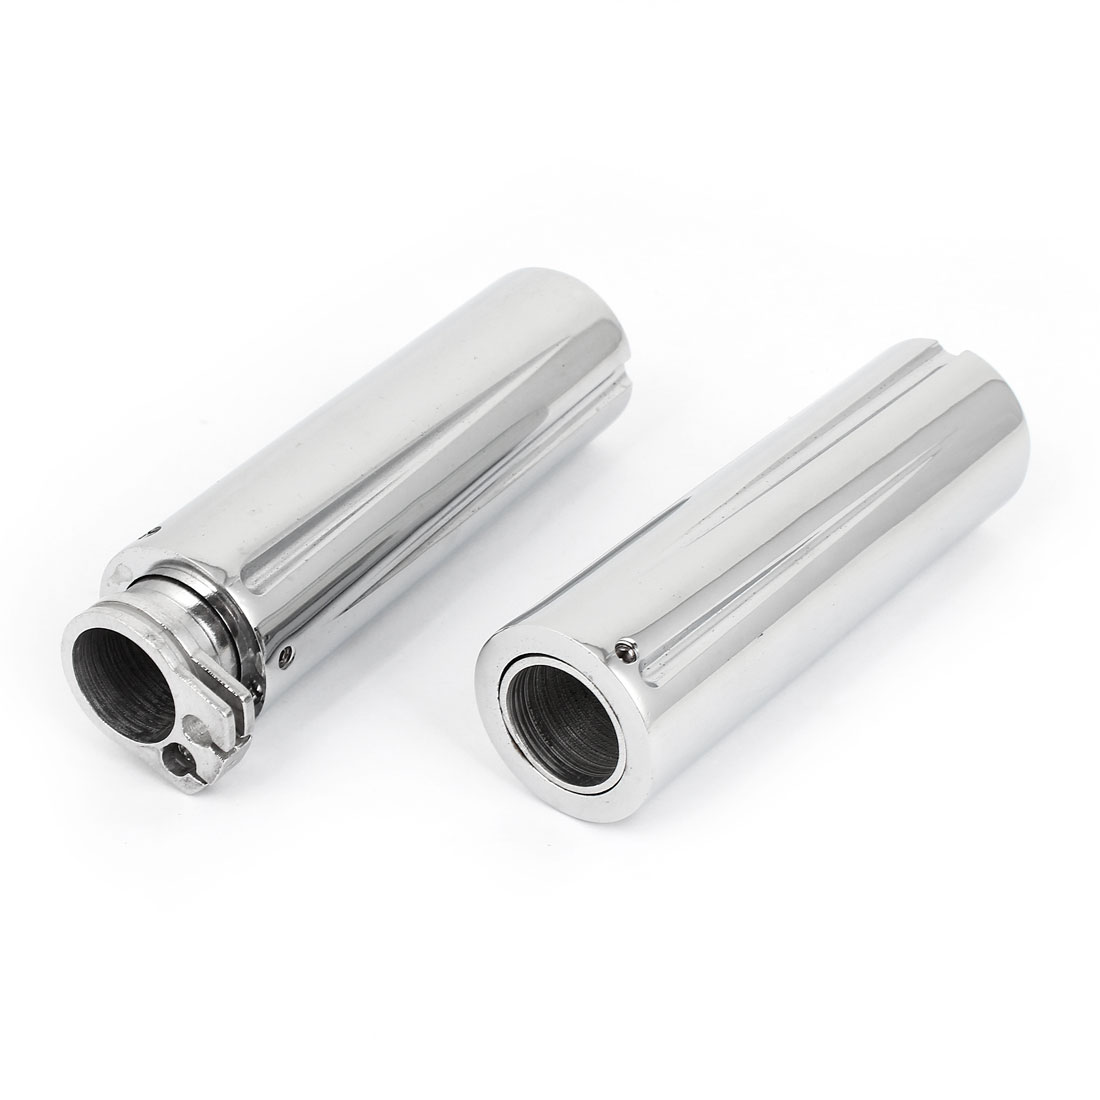 Motorcycle Motorbike Silver Tone Aluminum Alloy Grip Covers Protector 2 Pcs